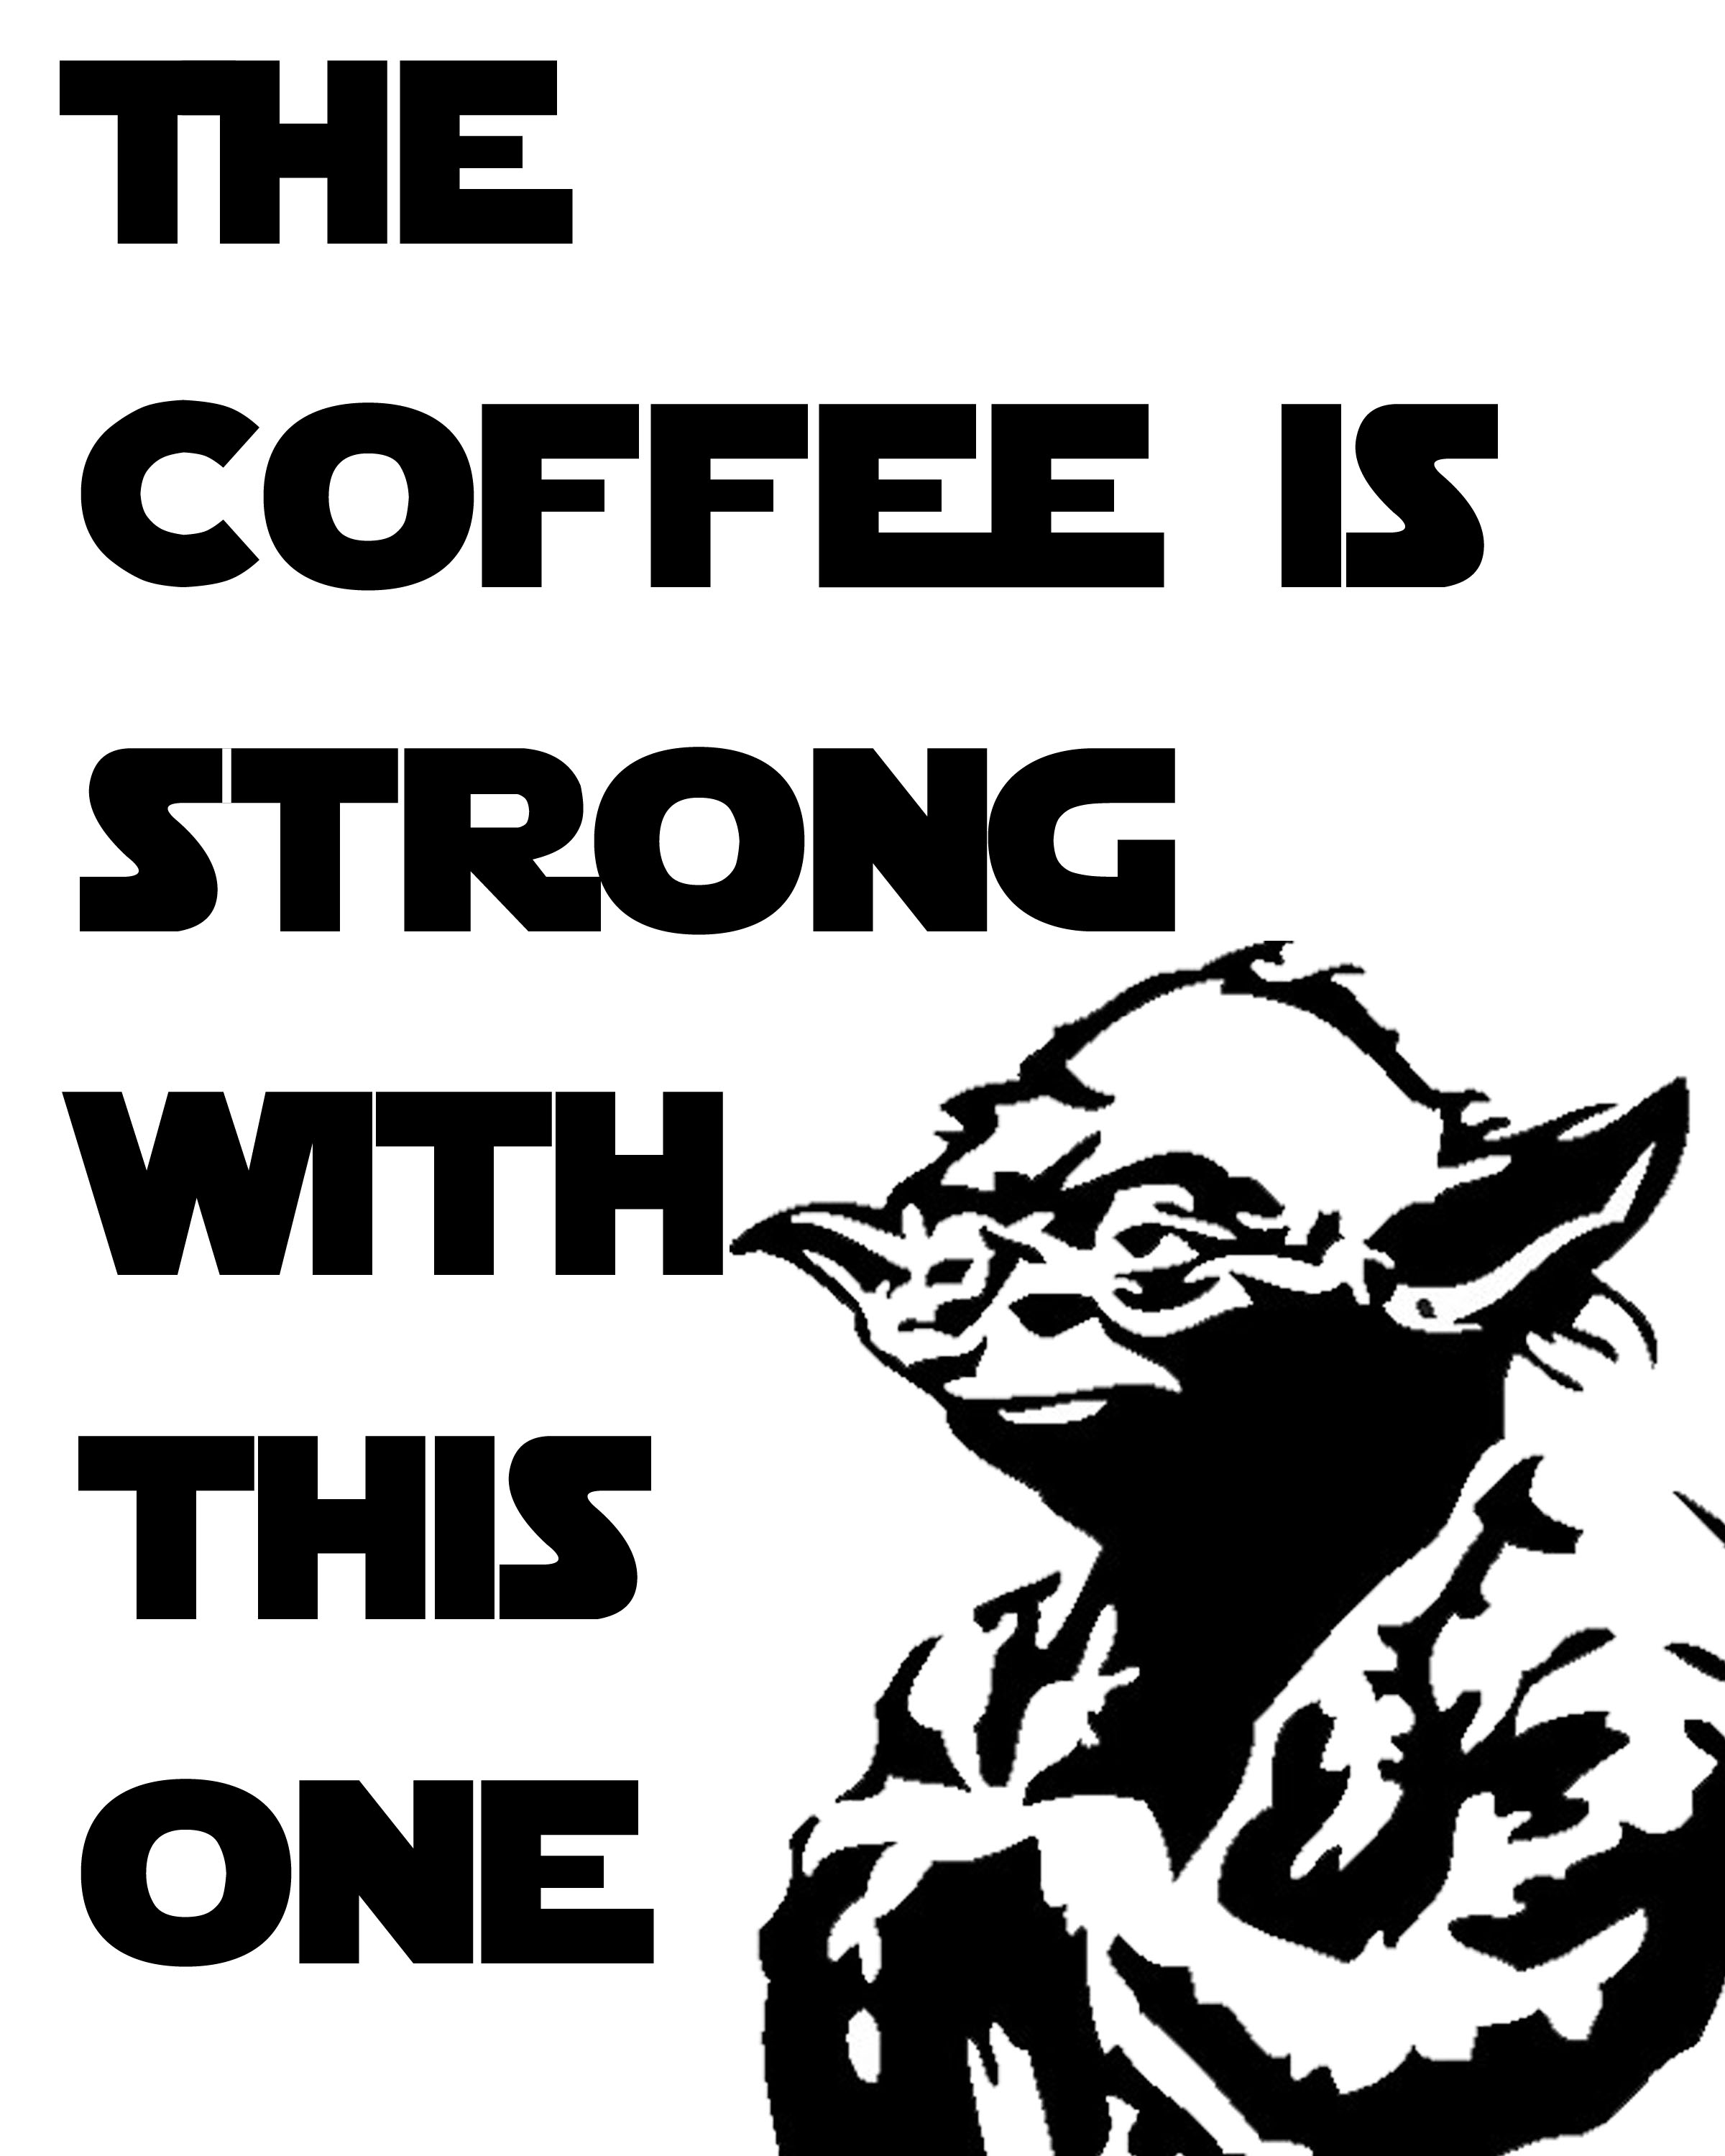 Free Star Wars Printables With A Coffee Theme Some Of